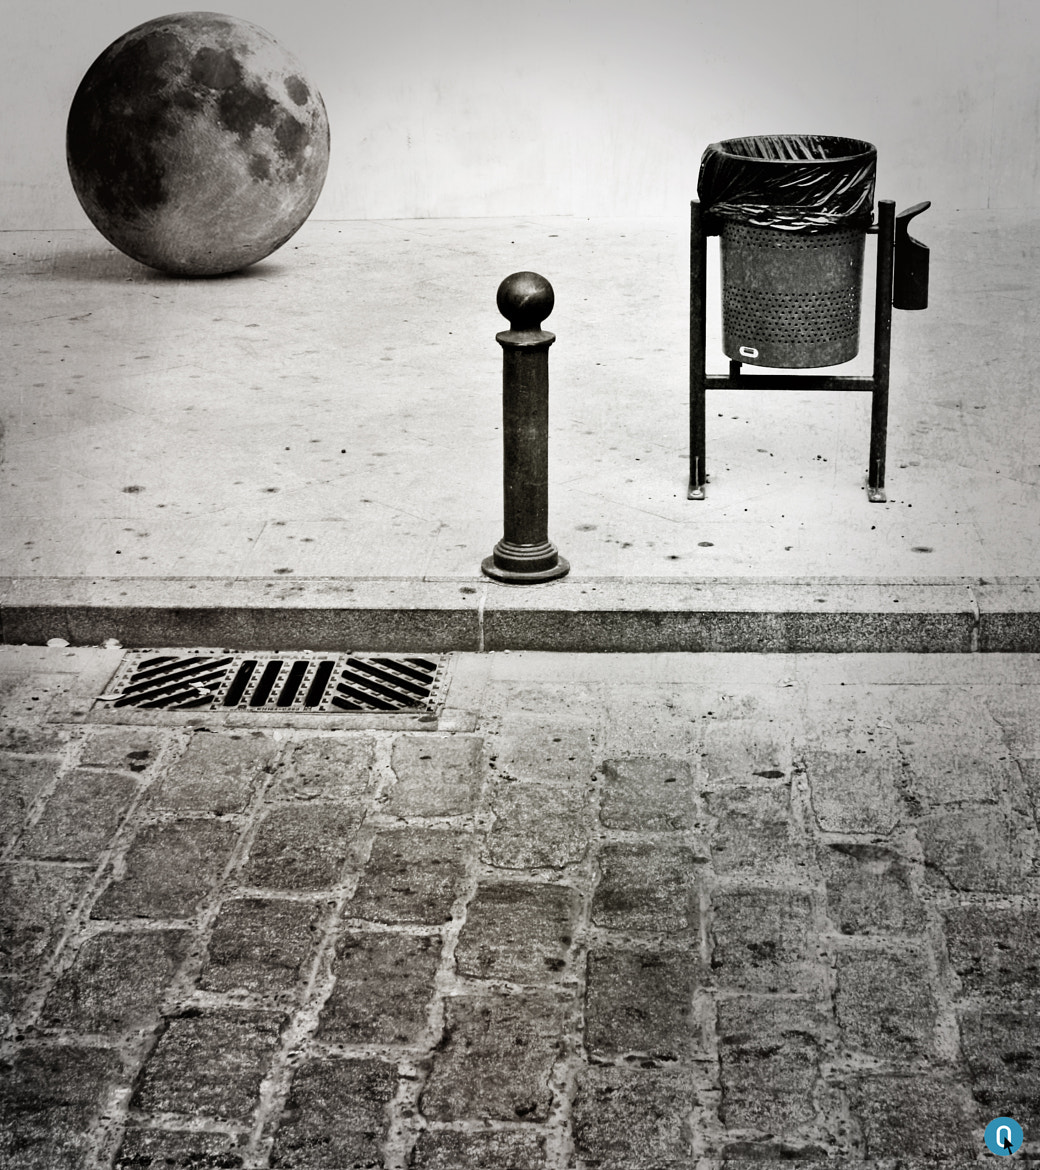 Photograph Urban universe elements by CERO . on 500px